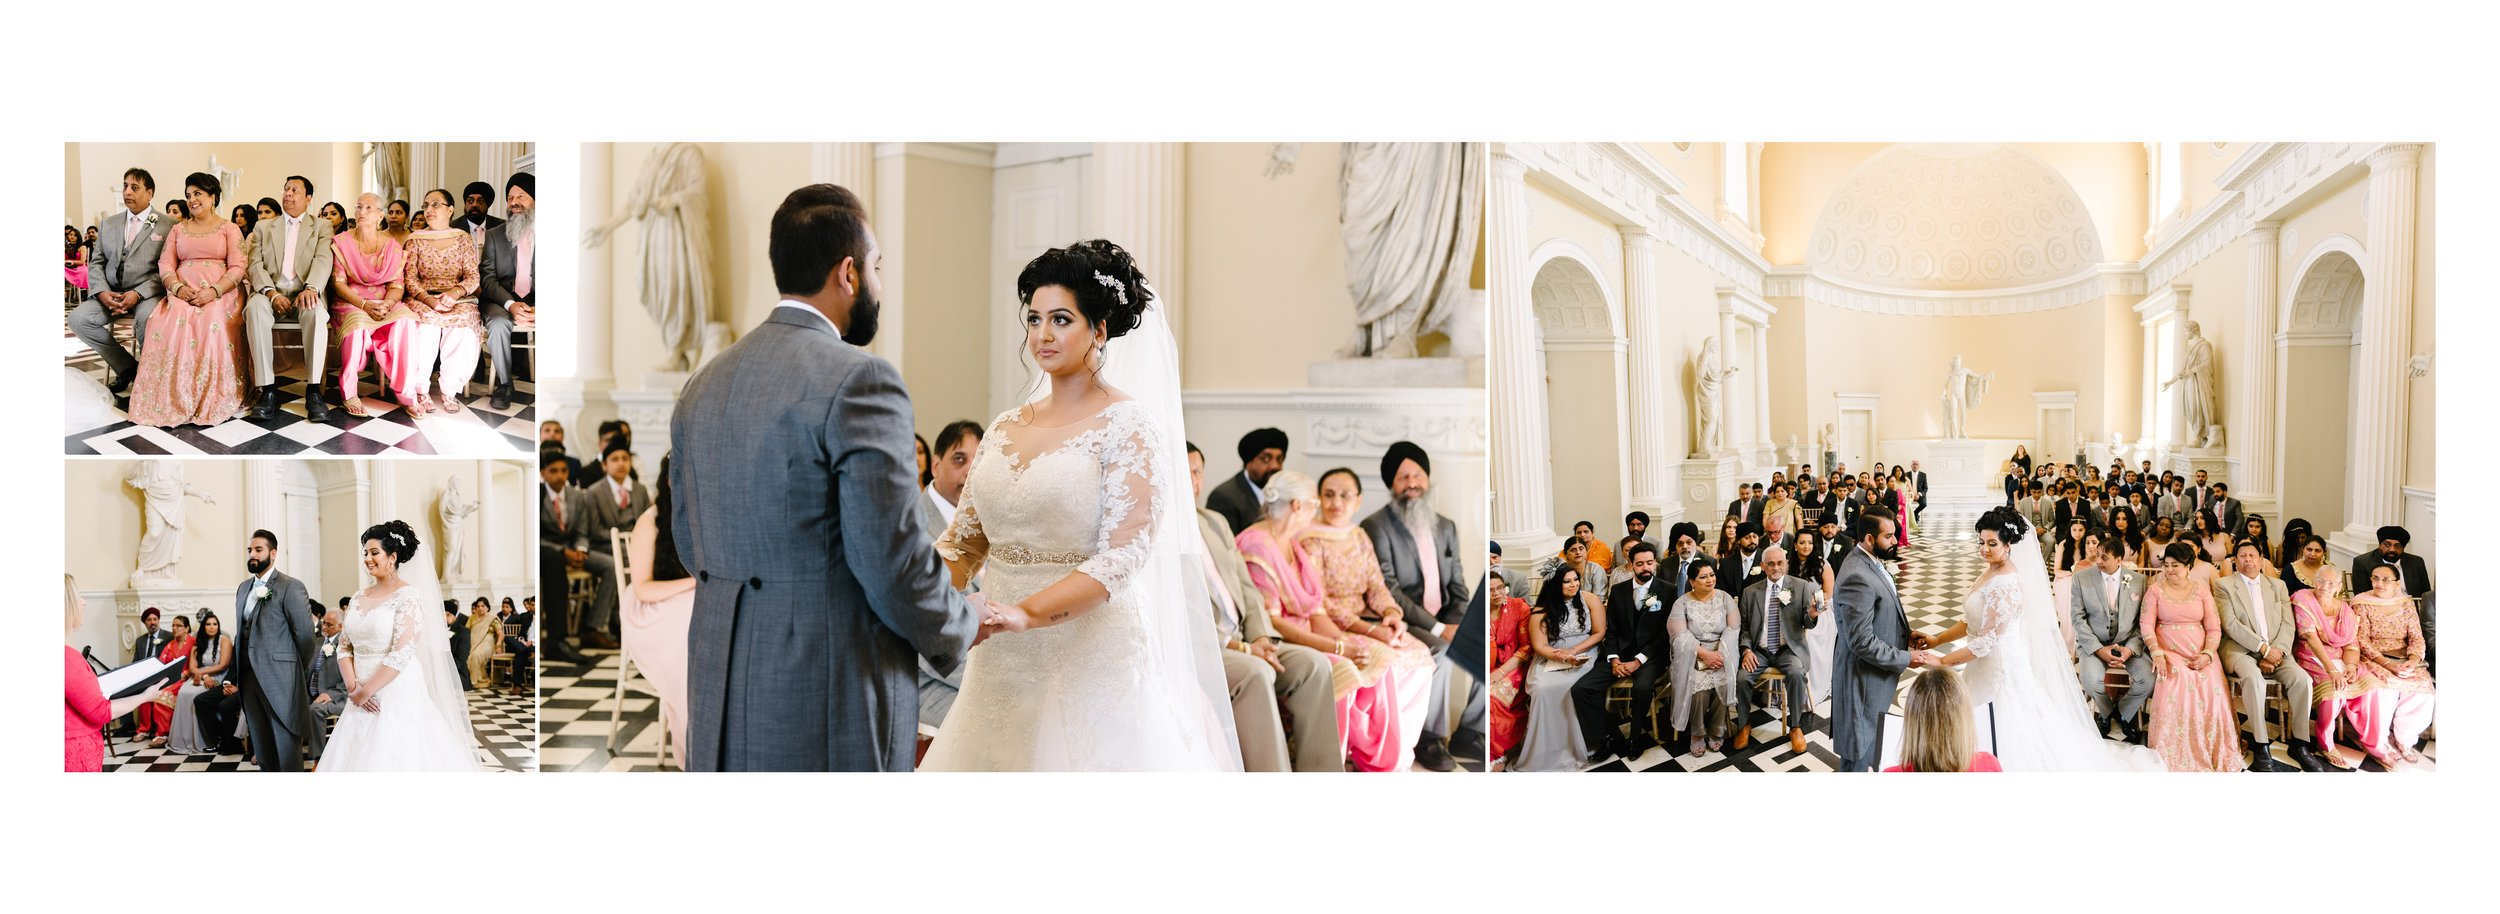 Terrie and Rahul looking Glam during their Civil Wedding at Syon House in London